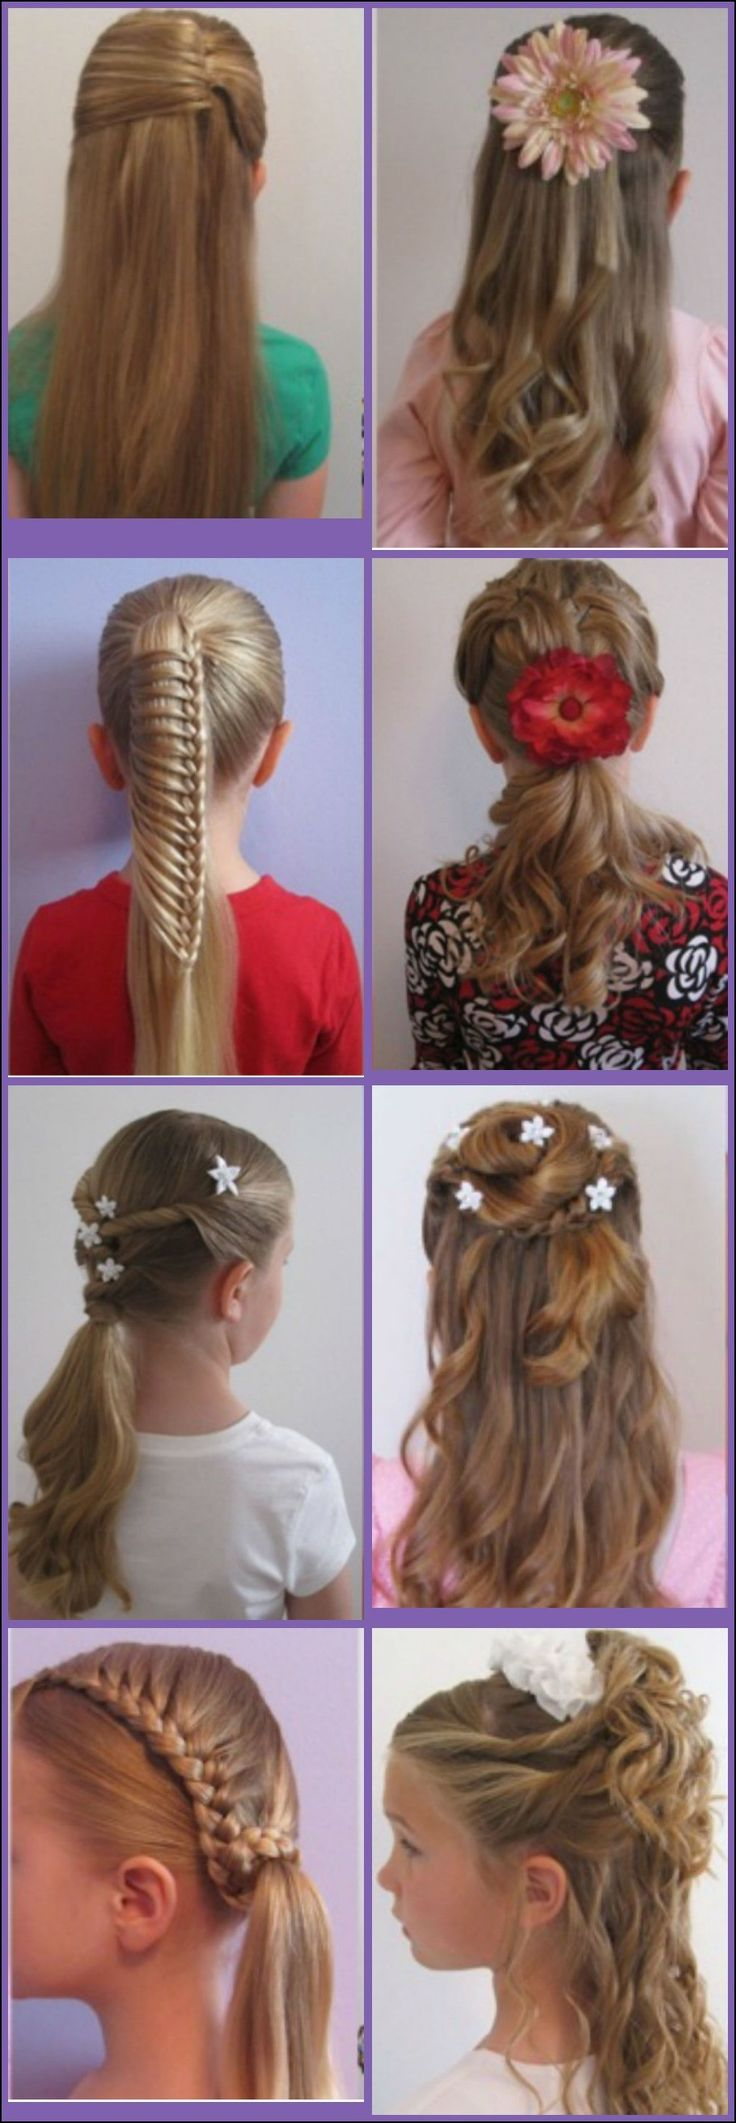 Best 25 Teenager hairstyles ideas on Pinterest  Easy